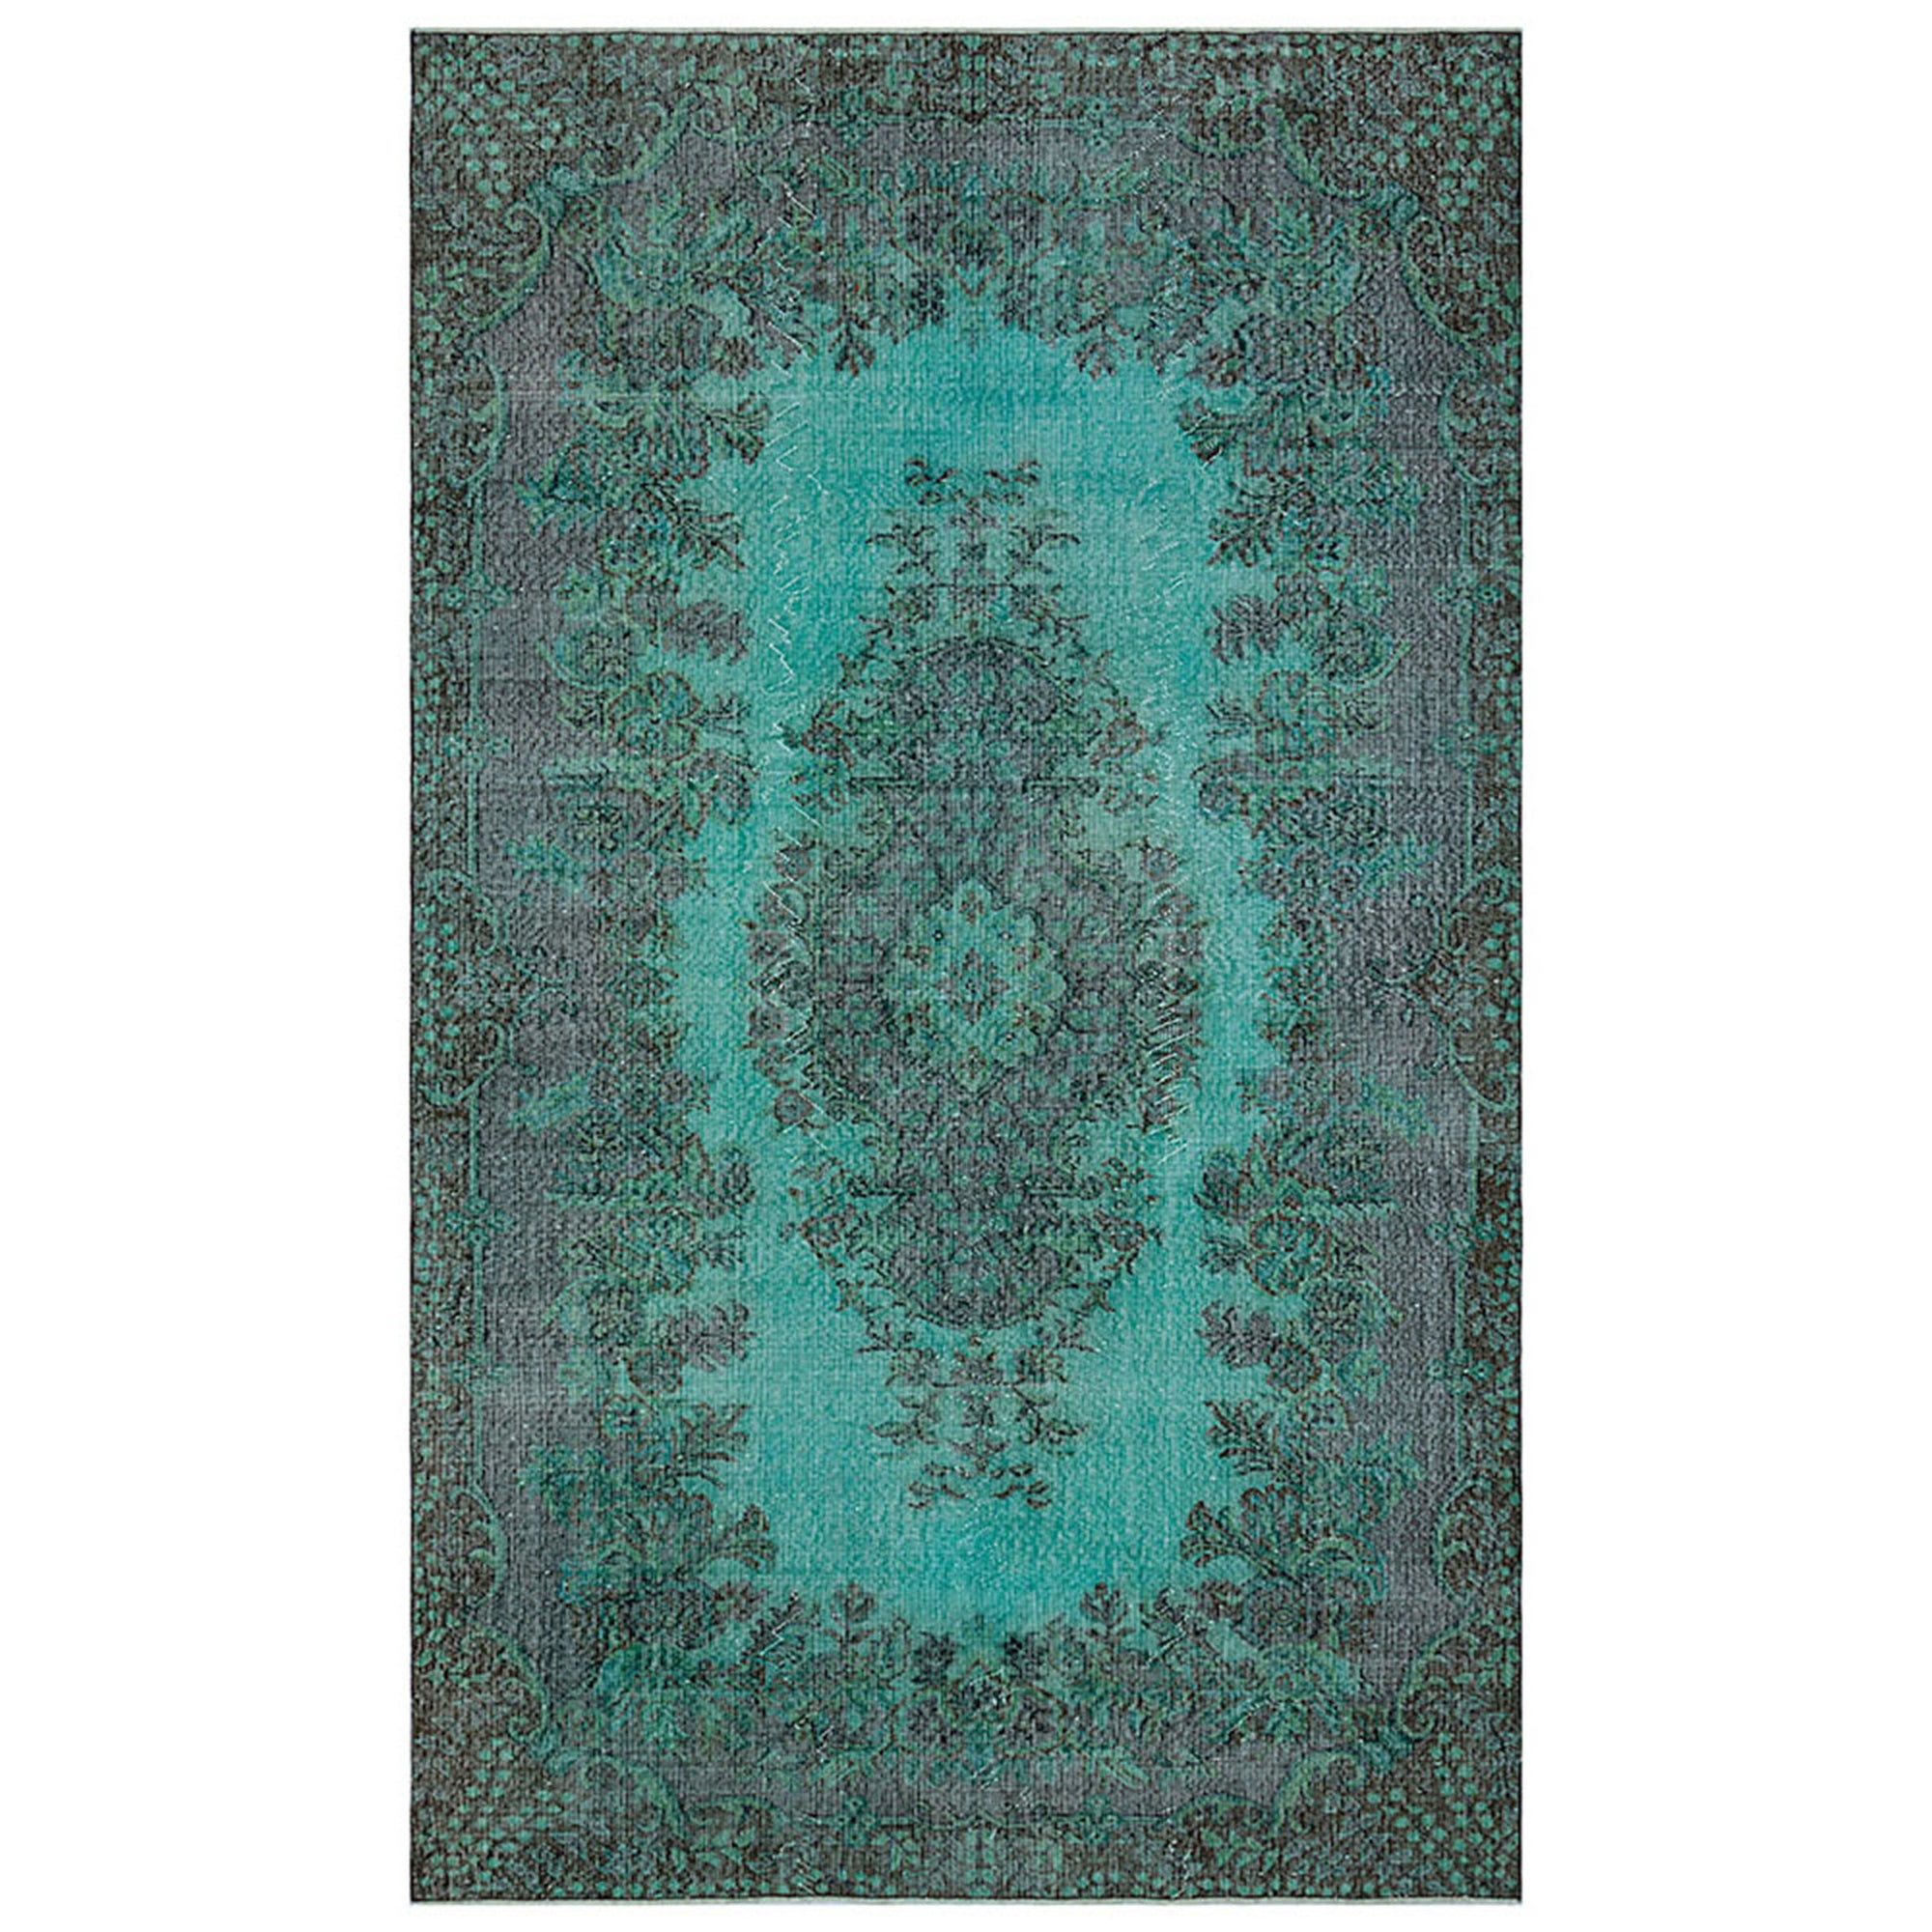 172 X 290 Anatolian Hand Knotted Carpet Vintage Style 60N2101 -  172 × 290 سجادة أناضولية معقودة يدويًا - Shop Online Furniture and Home Decor Store in Dubai, UAE at ebarza